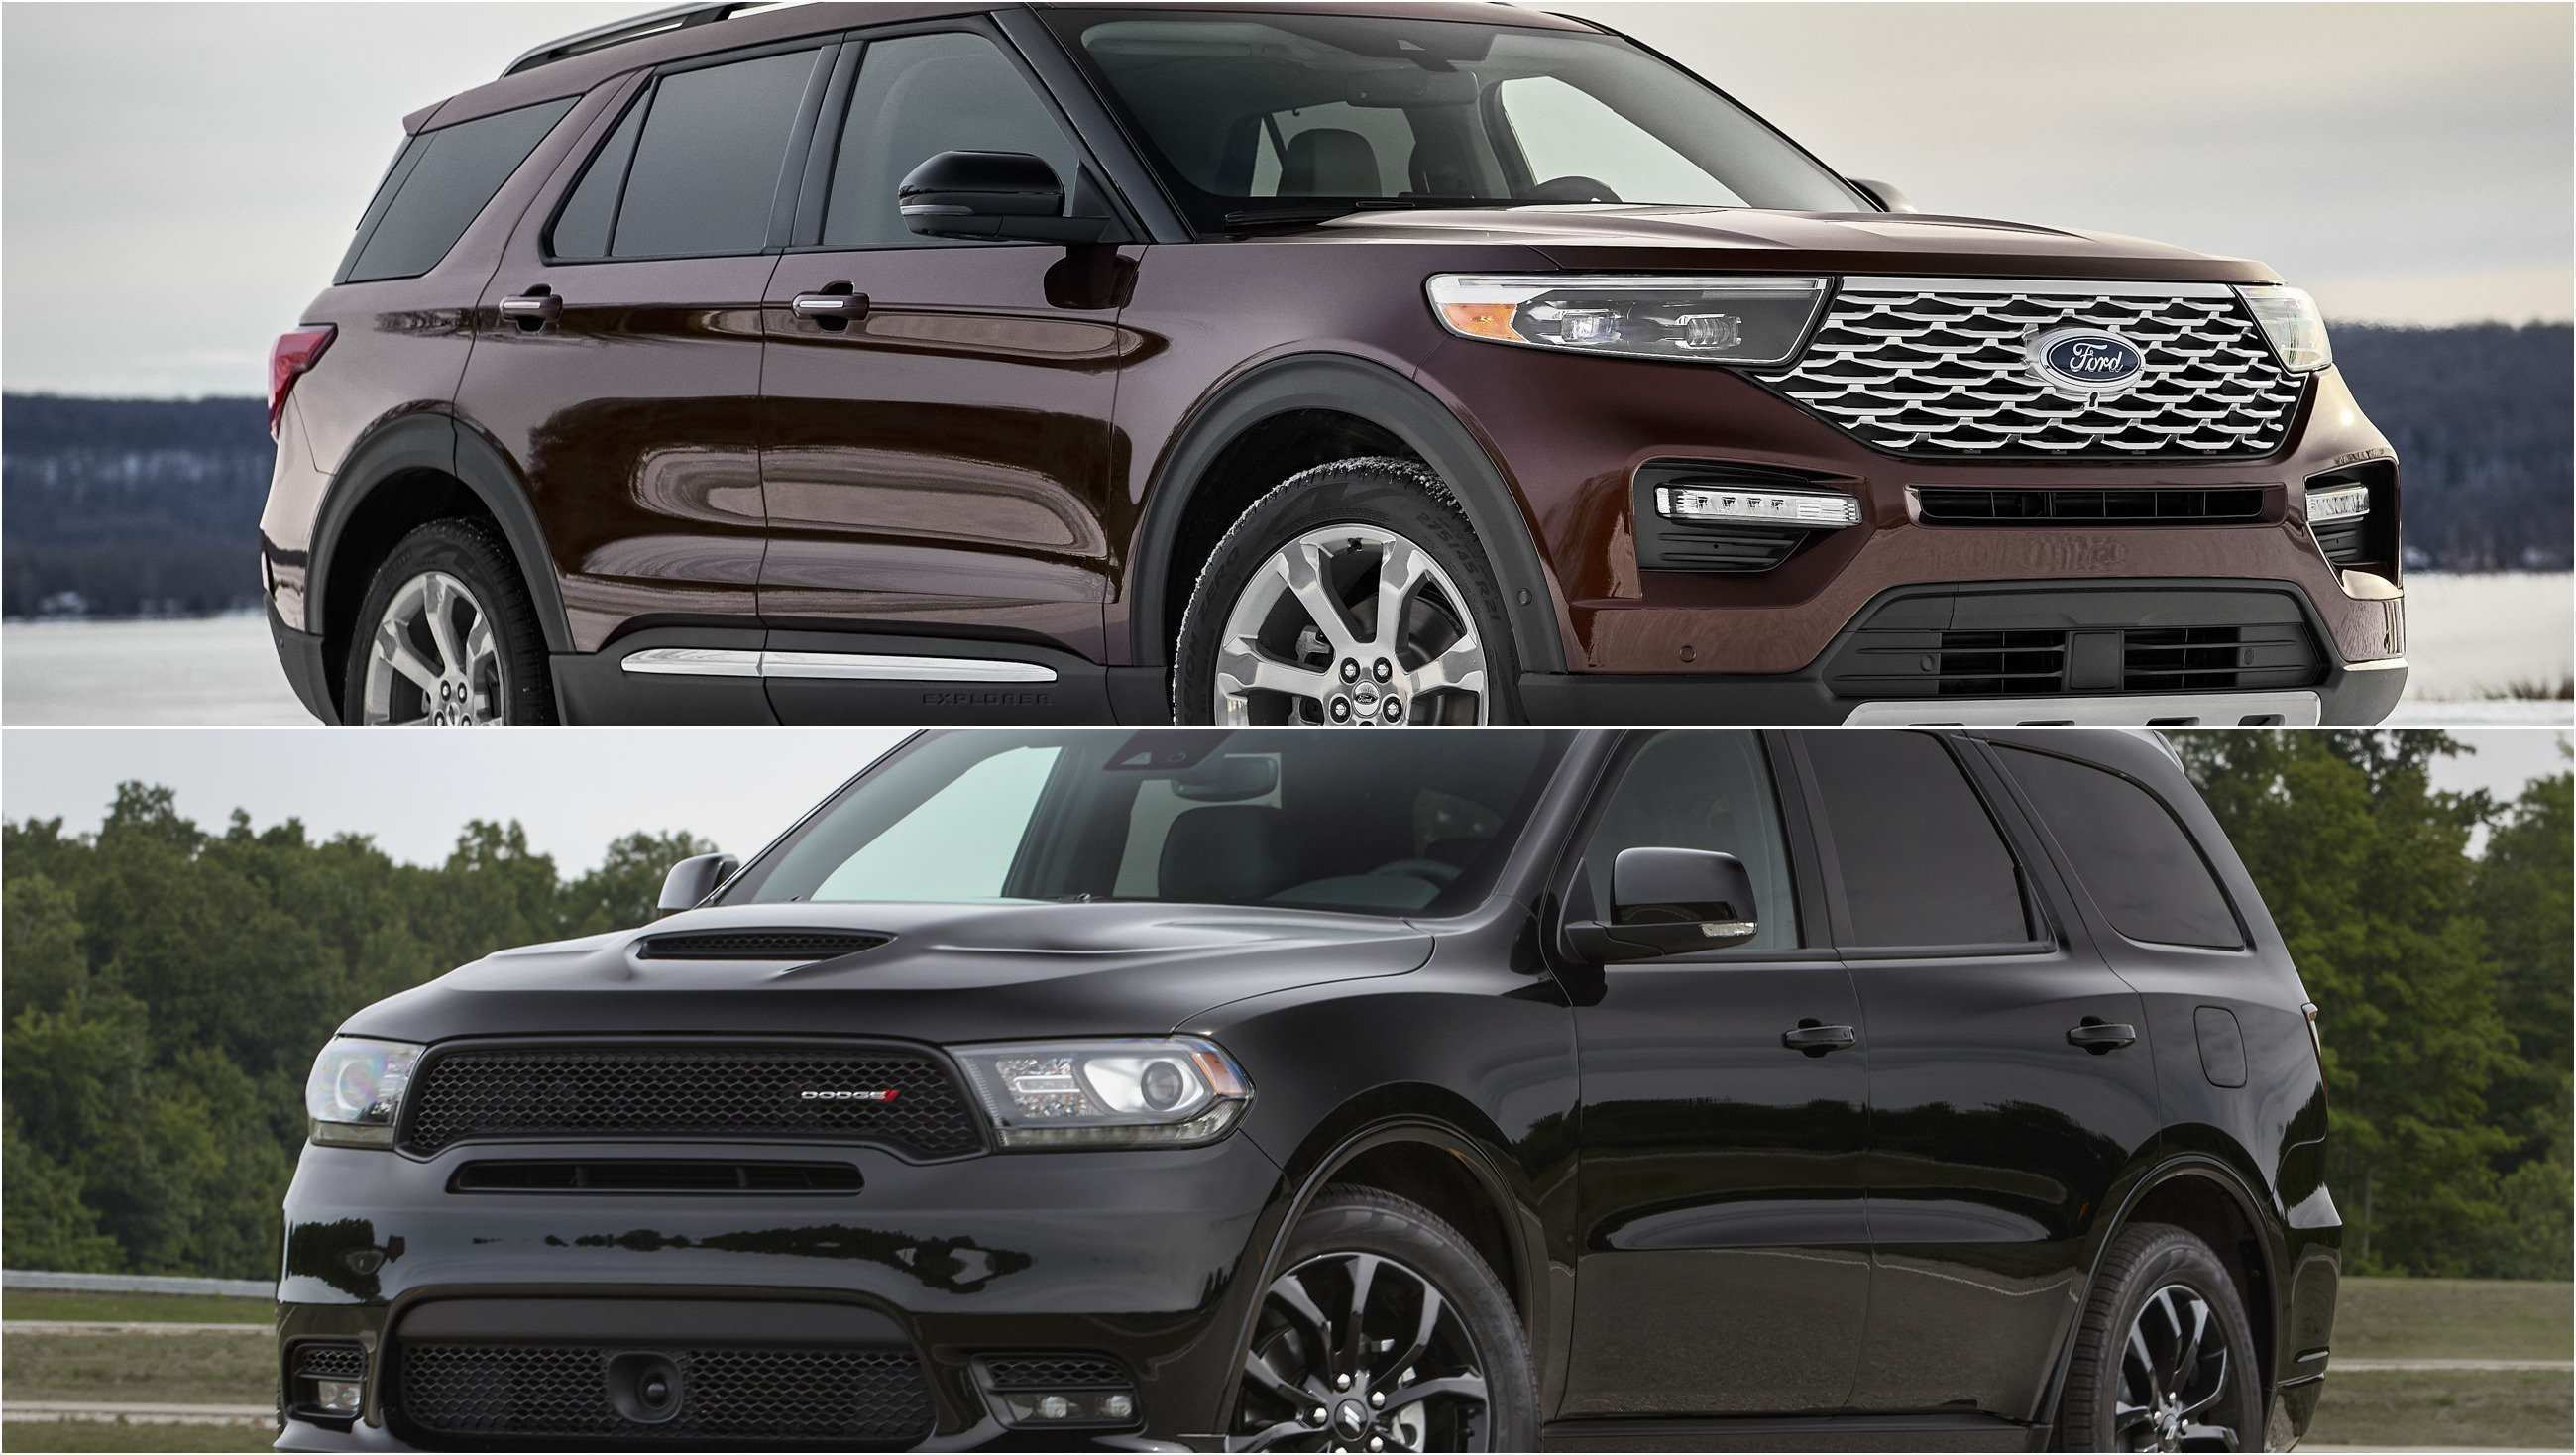 65 A Dodge Durango 2020 Redesign Rumors